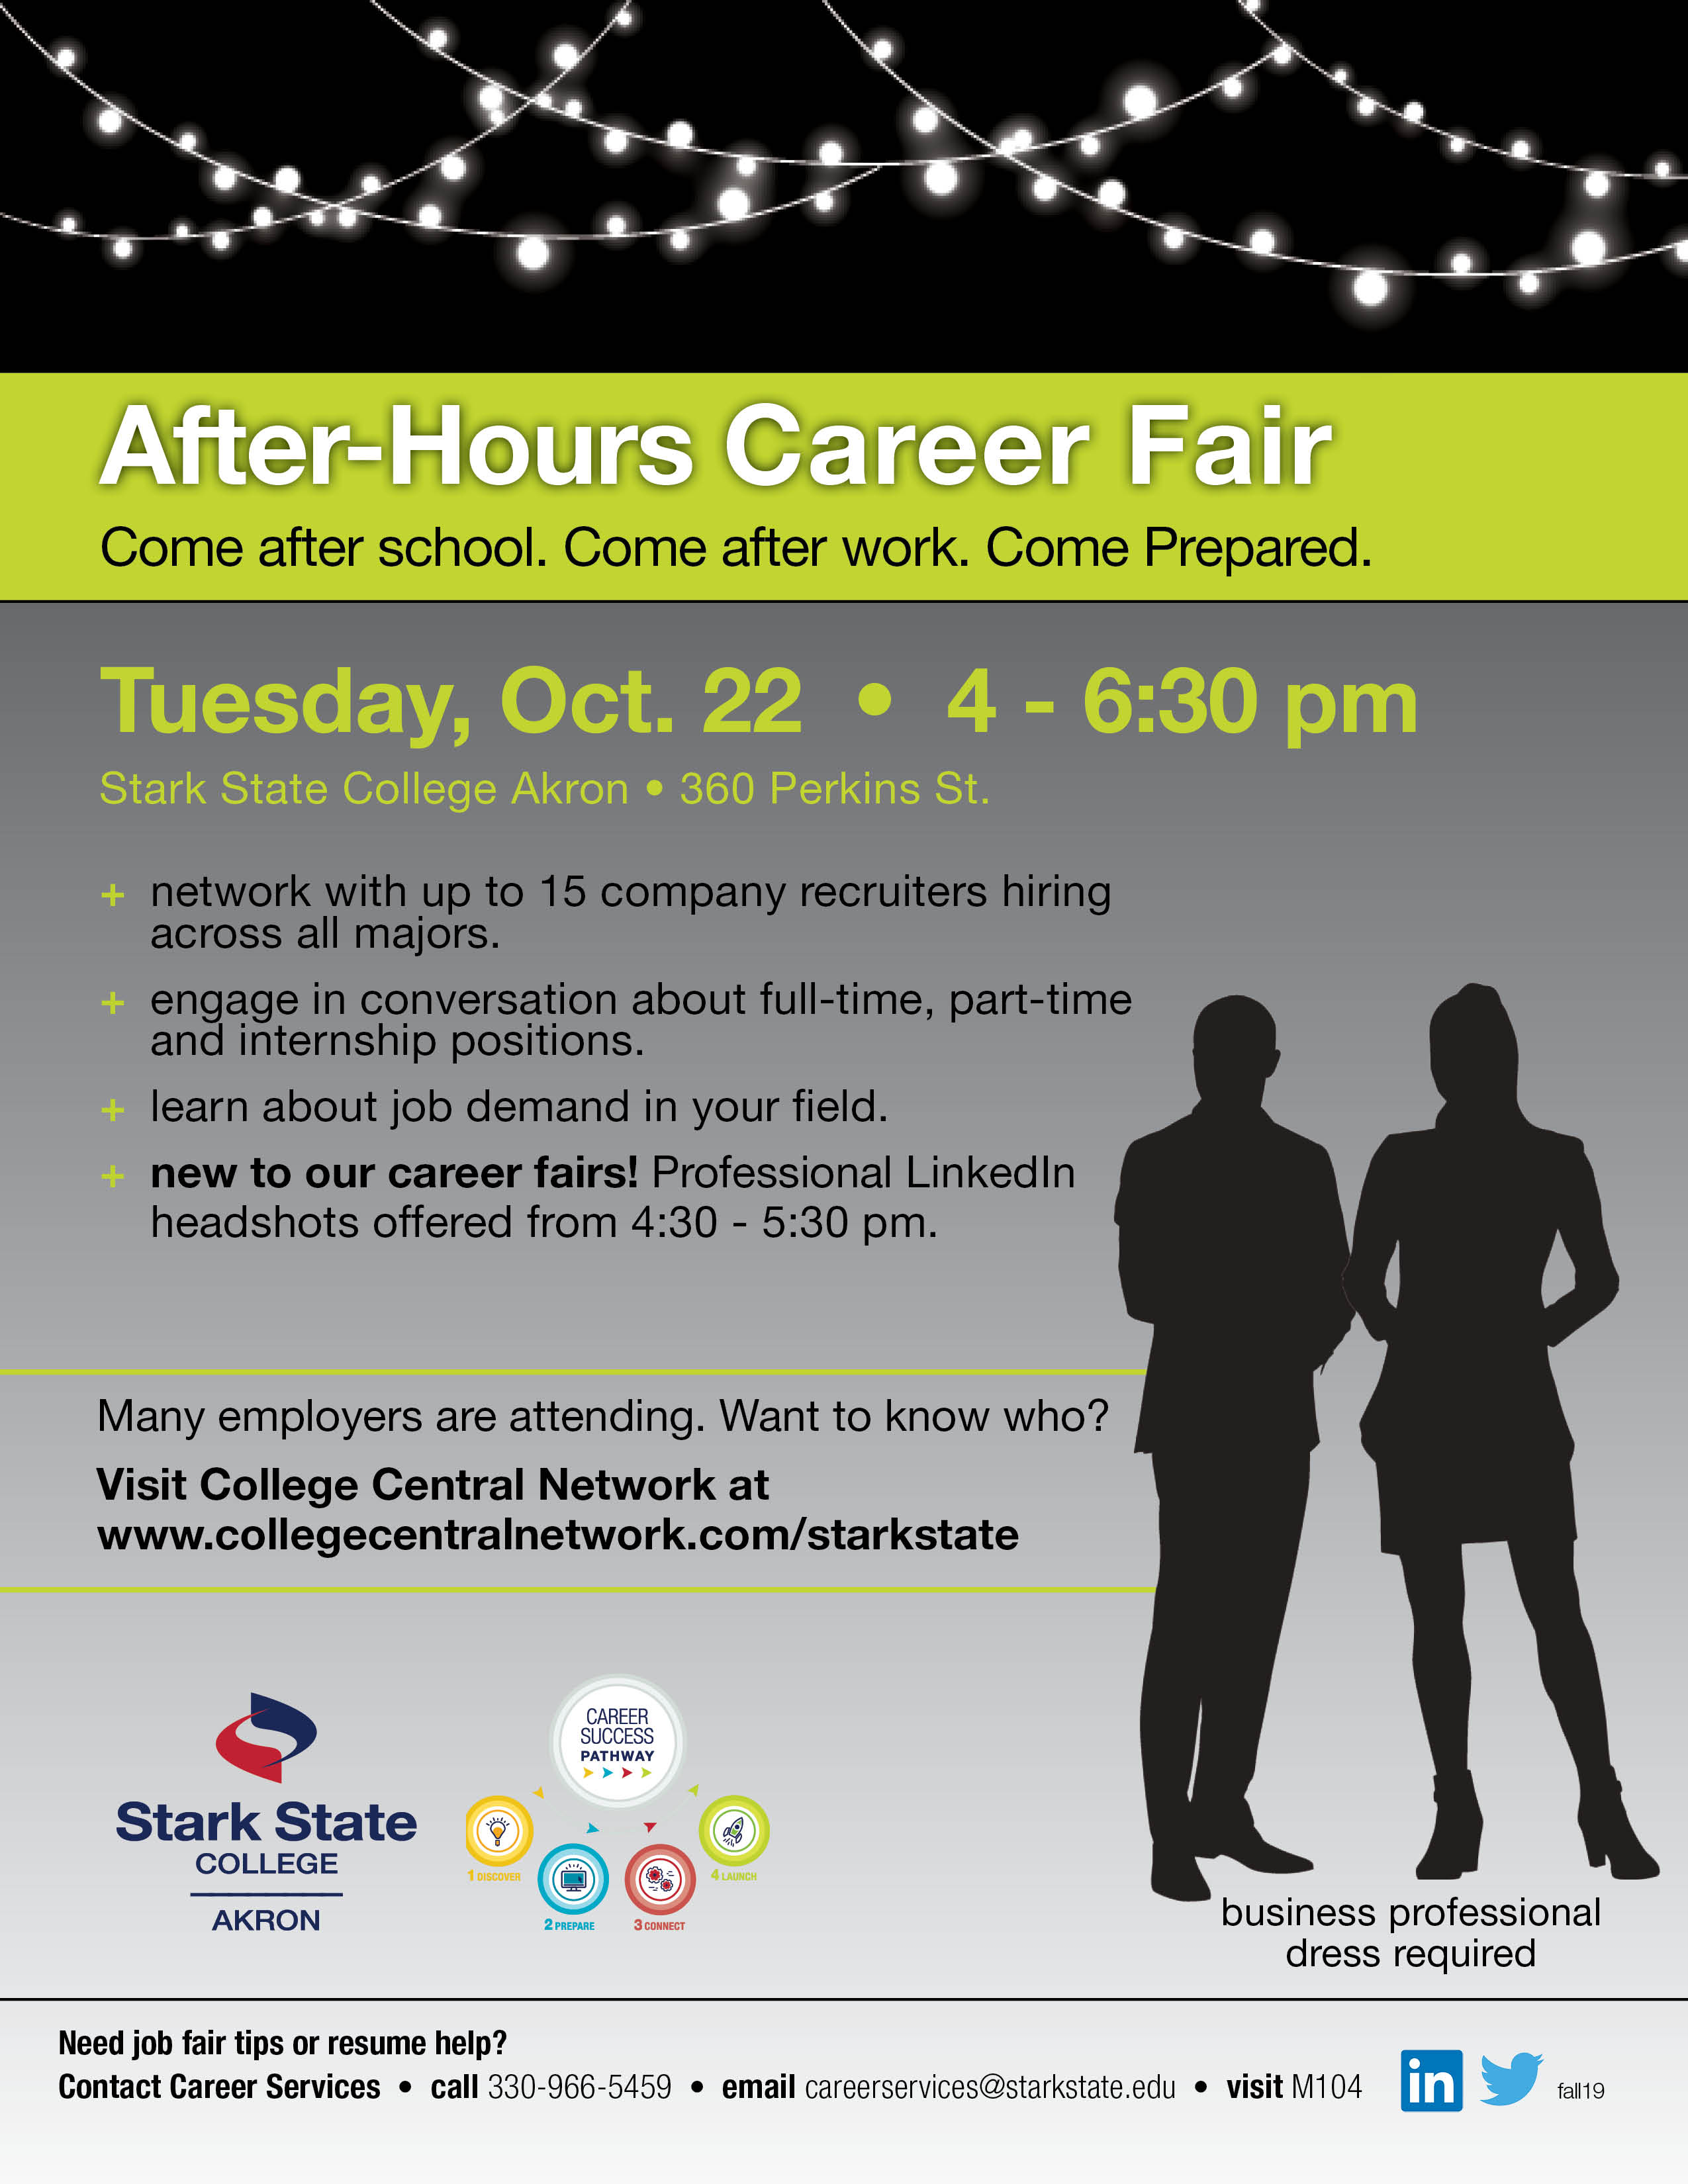 SSC Akron | After-Hours Career Fair @ SSC Akron